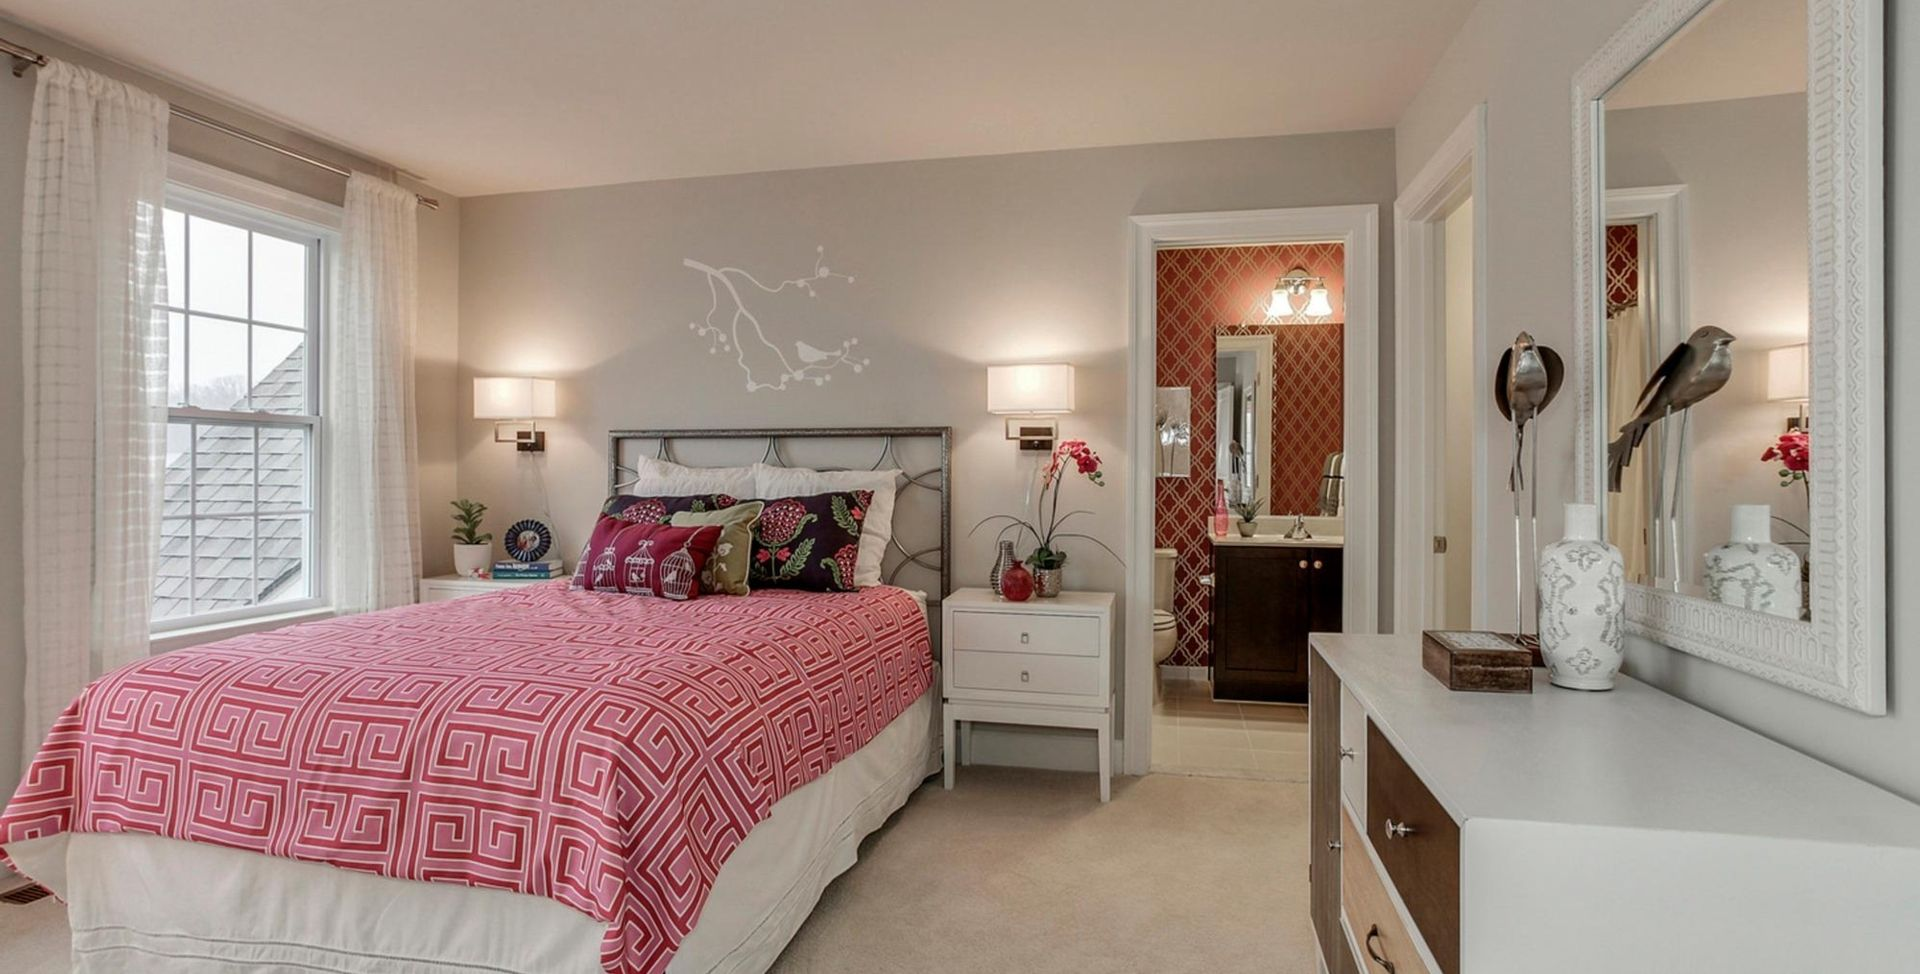 Bedroom featured in the Sorrento MG By Mid-Atlantic Builders in Washington, MD